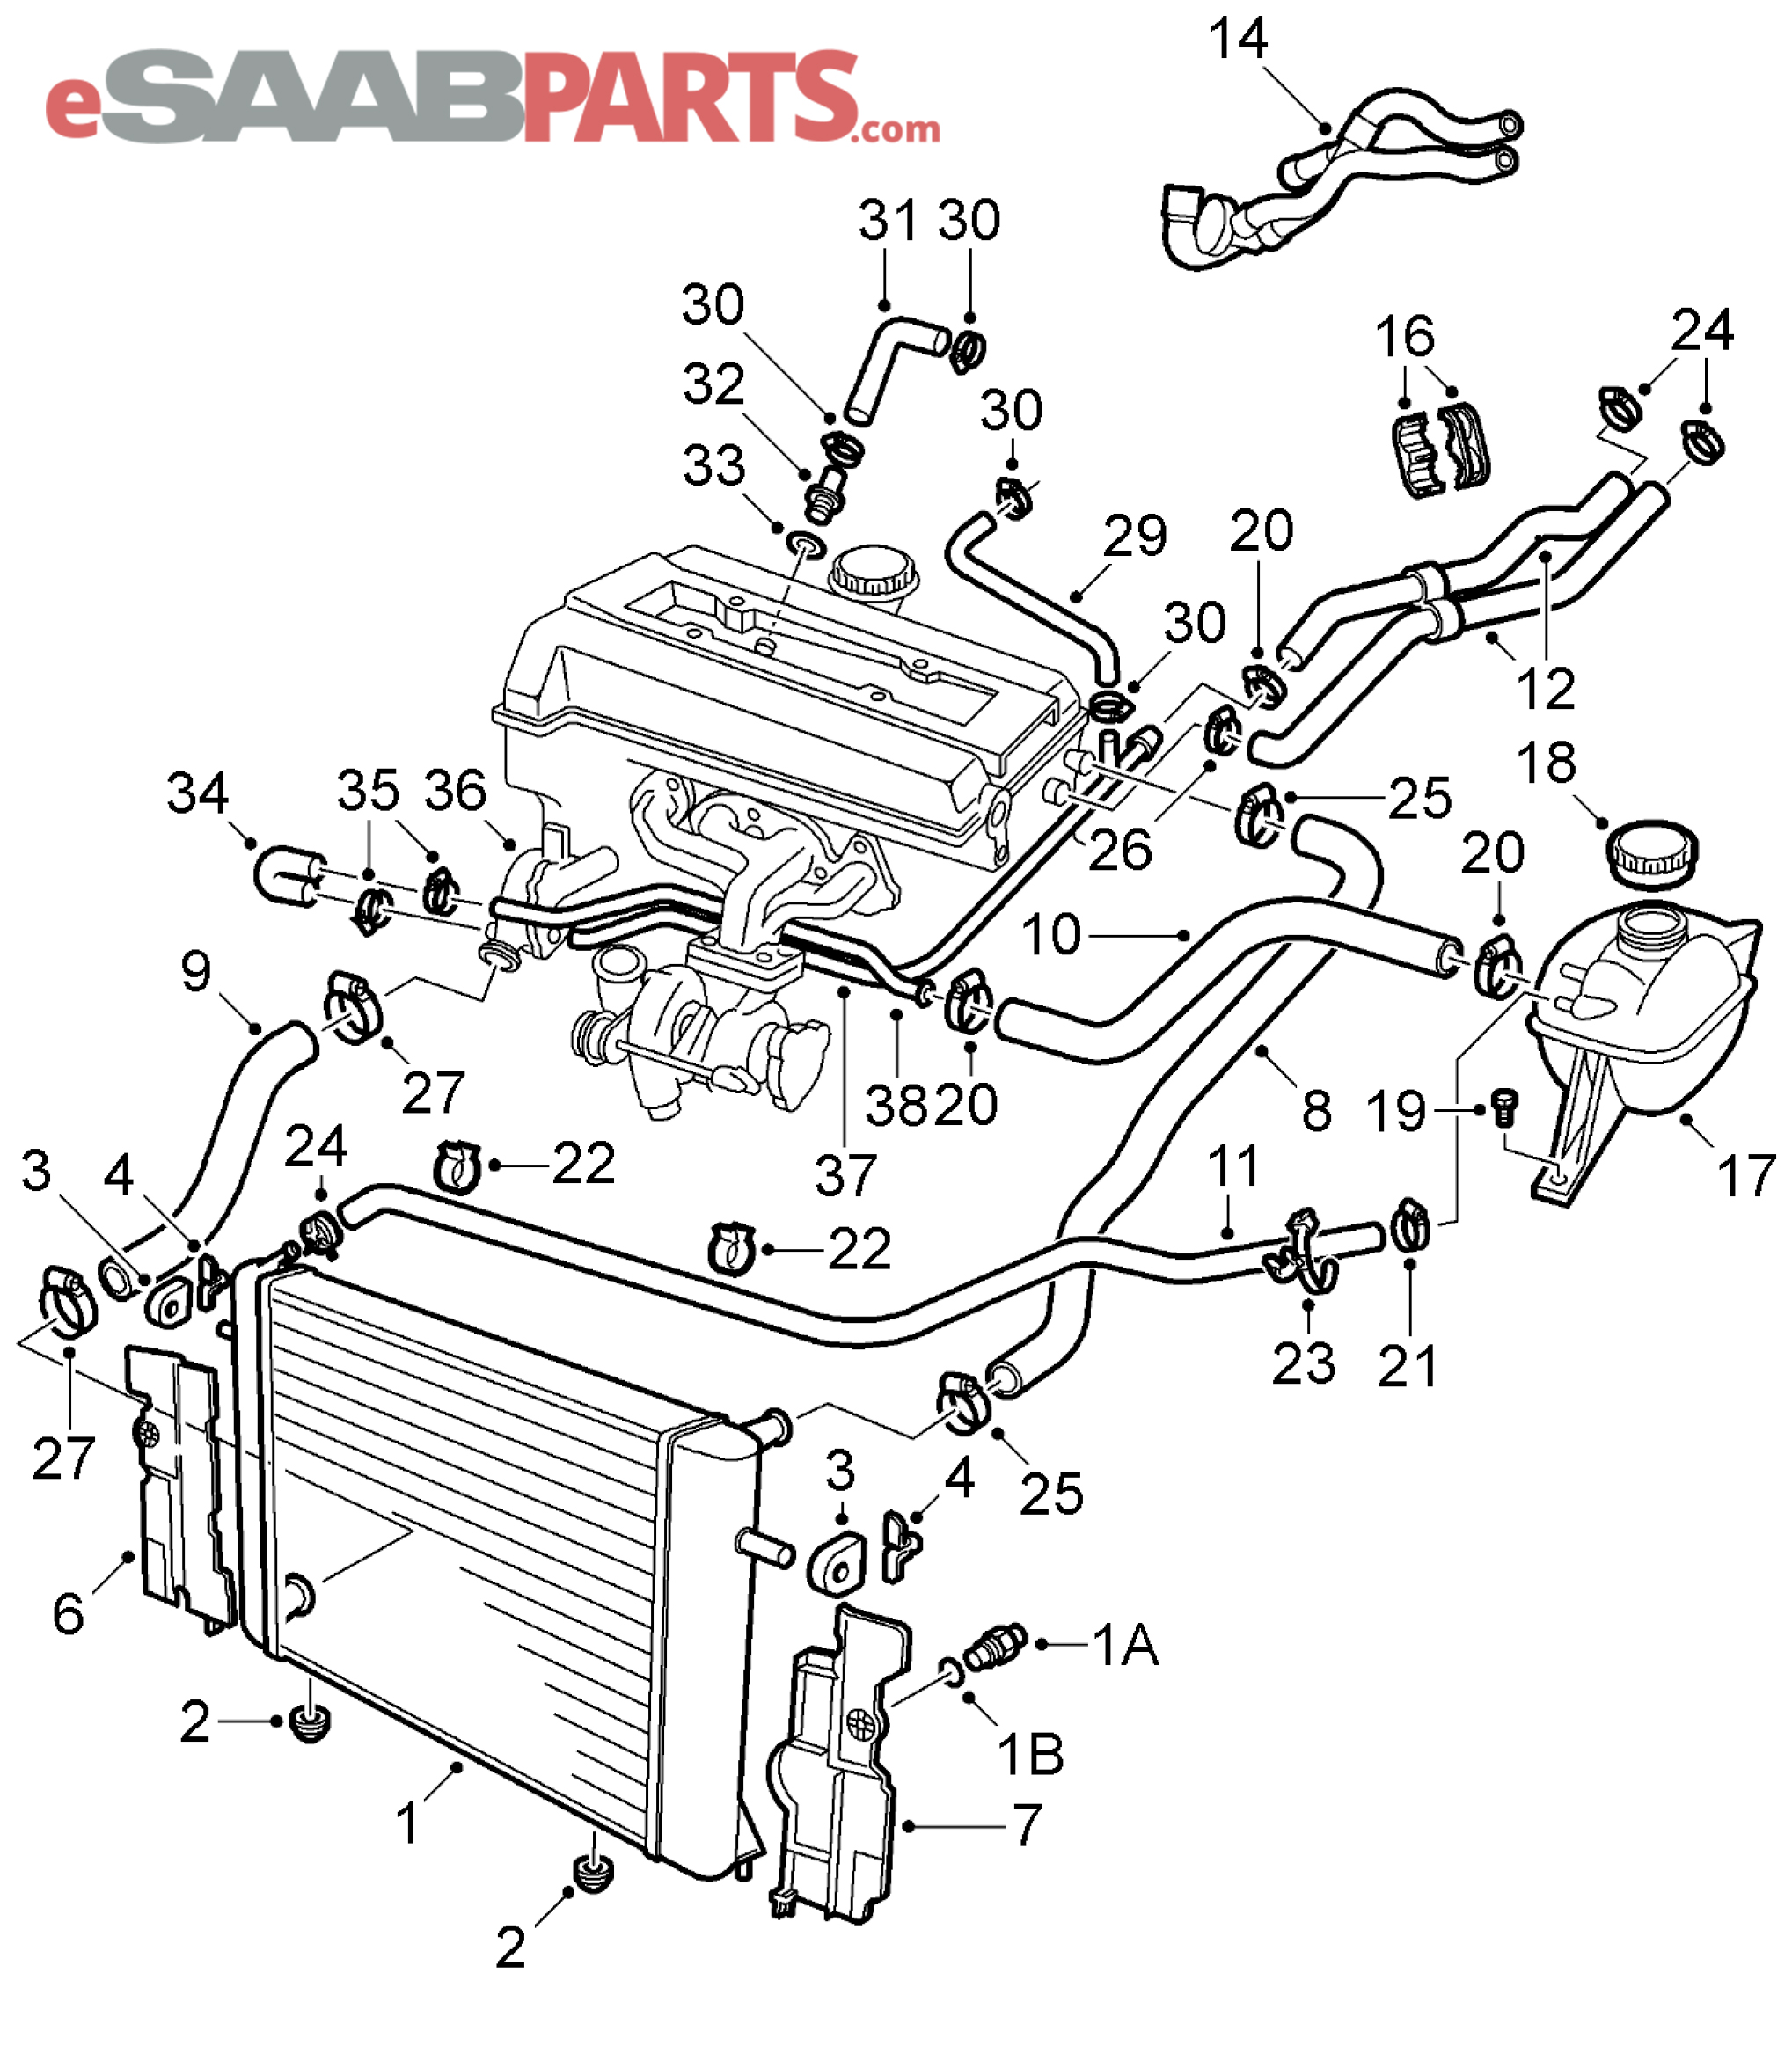 saab 900 turbo se exhaust diagram on saab 900 2 0 engine diagramsaab 900 engine diagram wiring diagram imp saab 900 turbo se exhaust diagram on saab 900 2 0 engine diagram